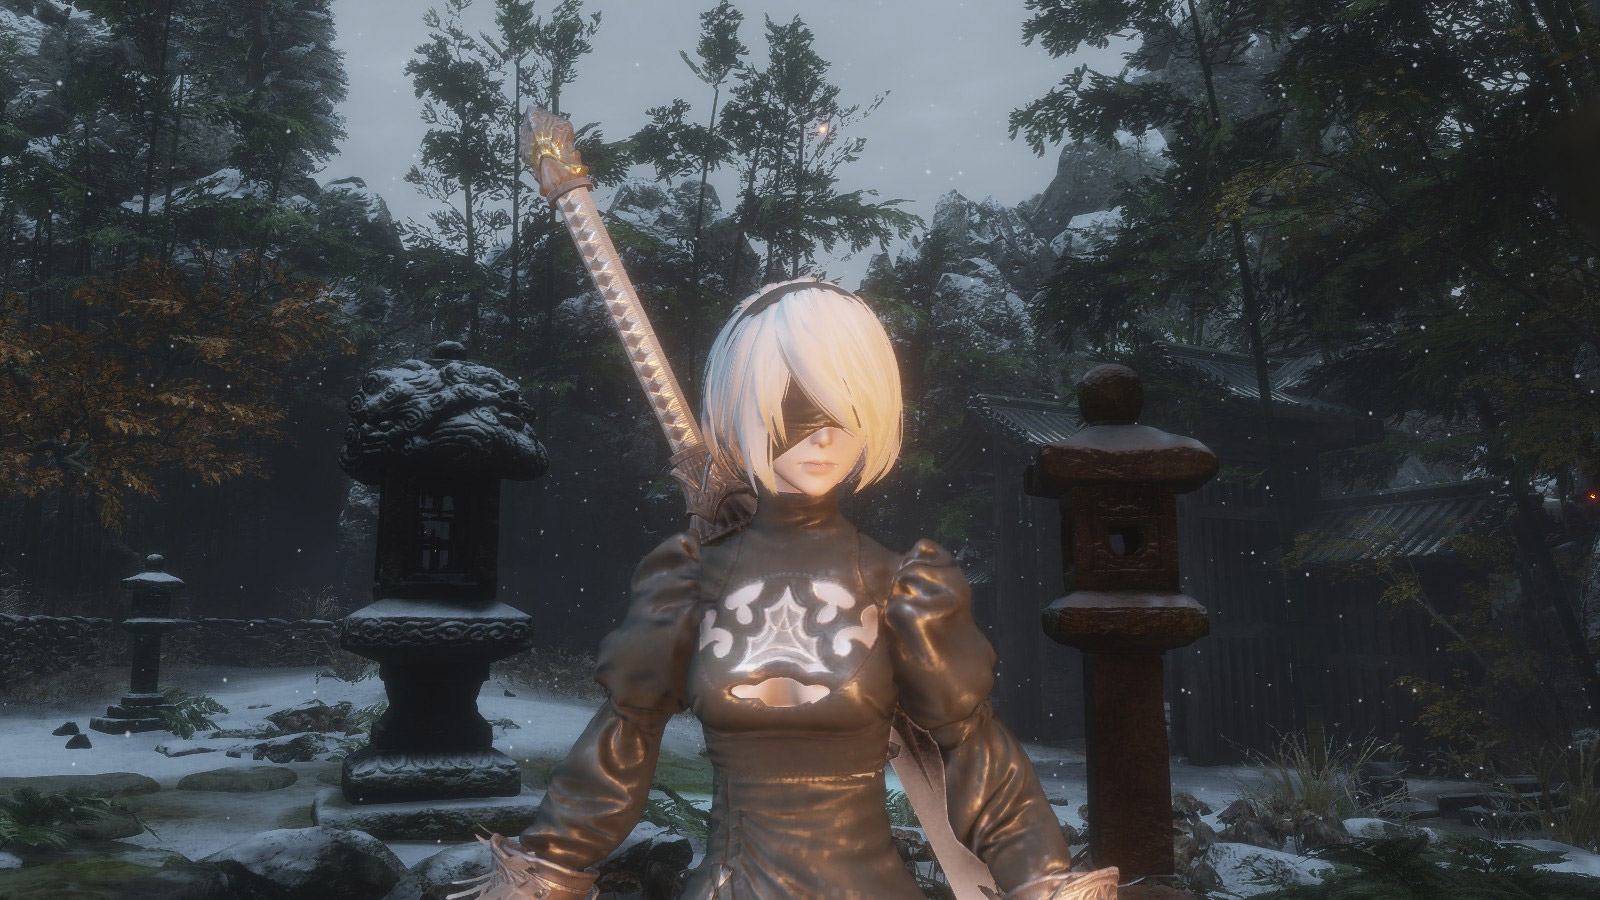 2B brings her bloodlust to Ashina with this Sekiro mod screenshot